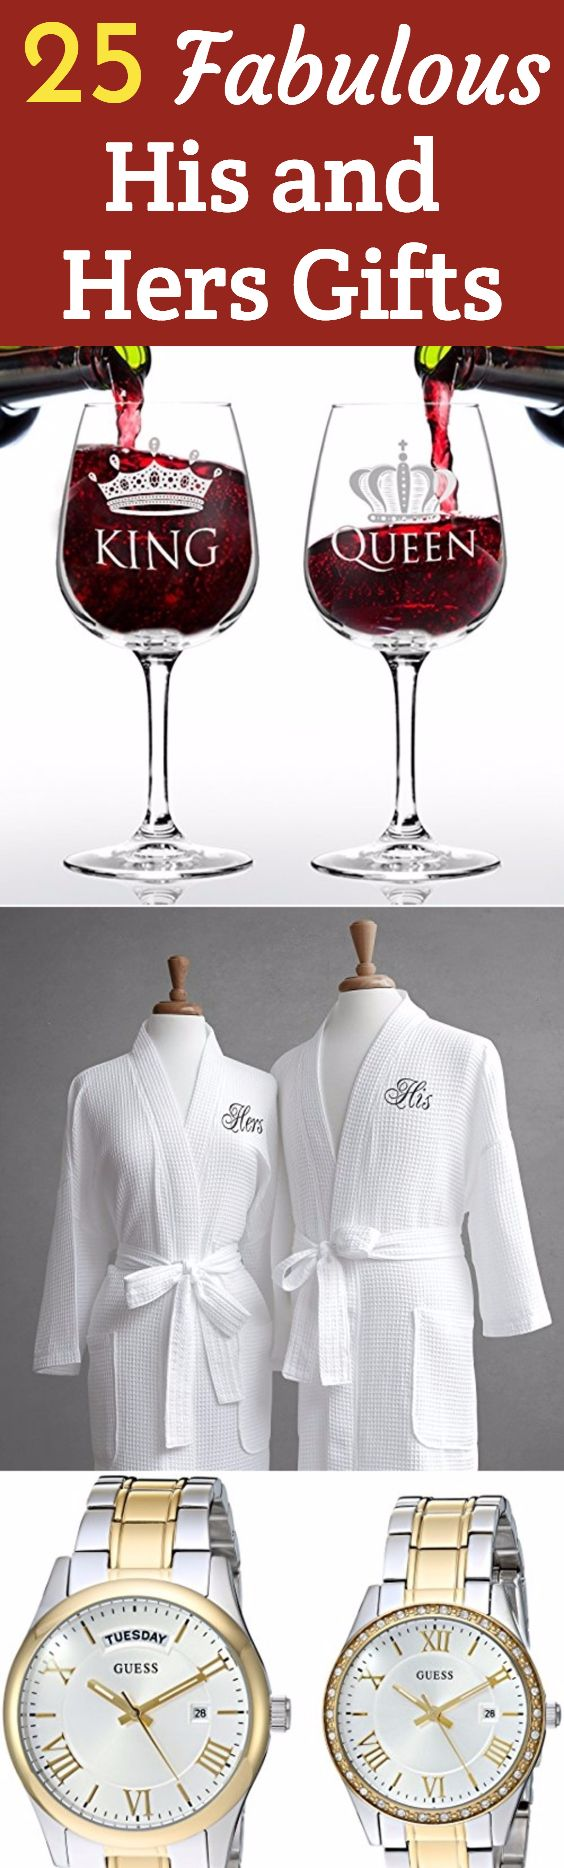 96bea6bac1 ... Wow Your Favorite Couple. Looking for His and Hers Gifts? Check out  these 25 awesome gifts for couples...perfect for weddings, showers or  Christmas!